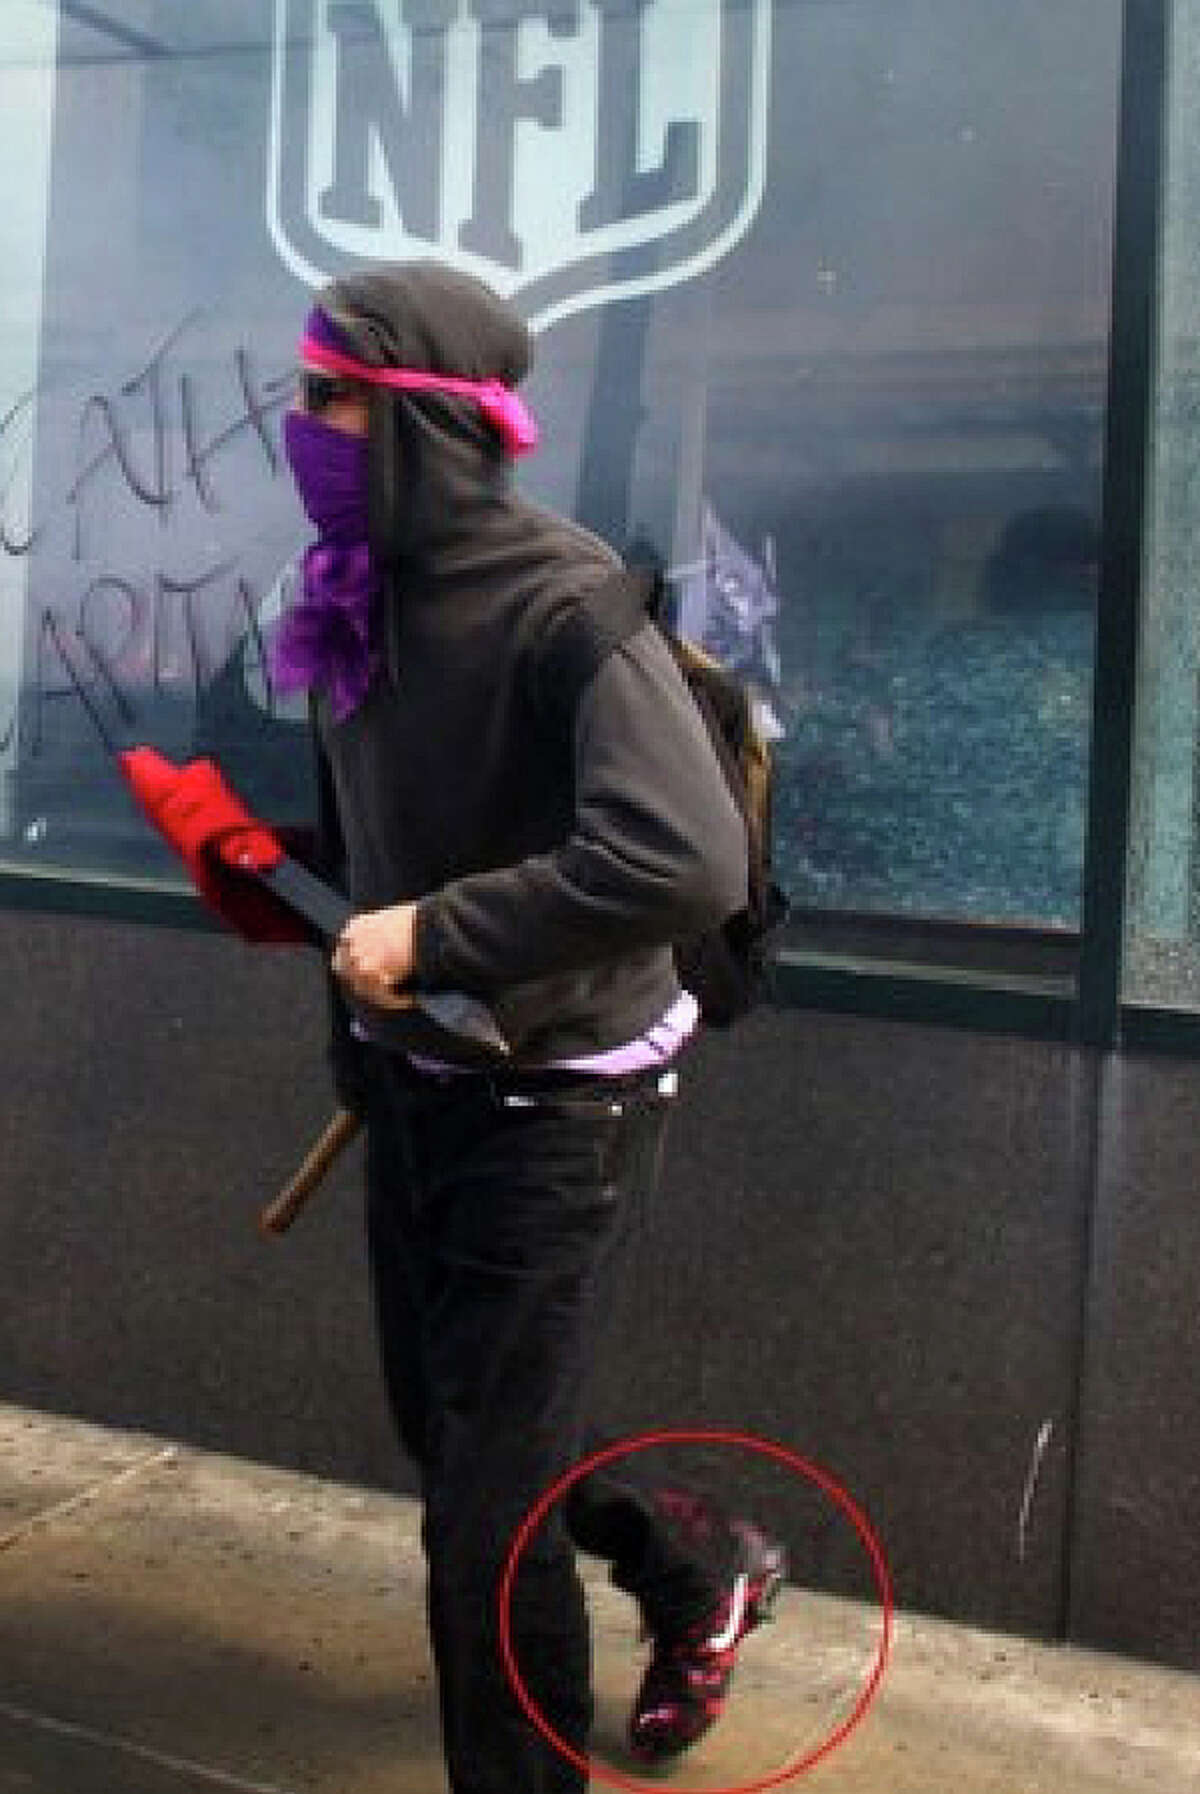 The man pictured above -- in Nike shoes, it seems -- is suspected of smashing windows at Niketown in downtown Seattle.